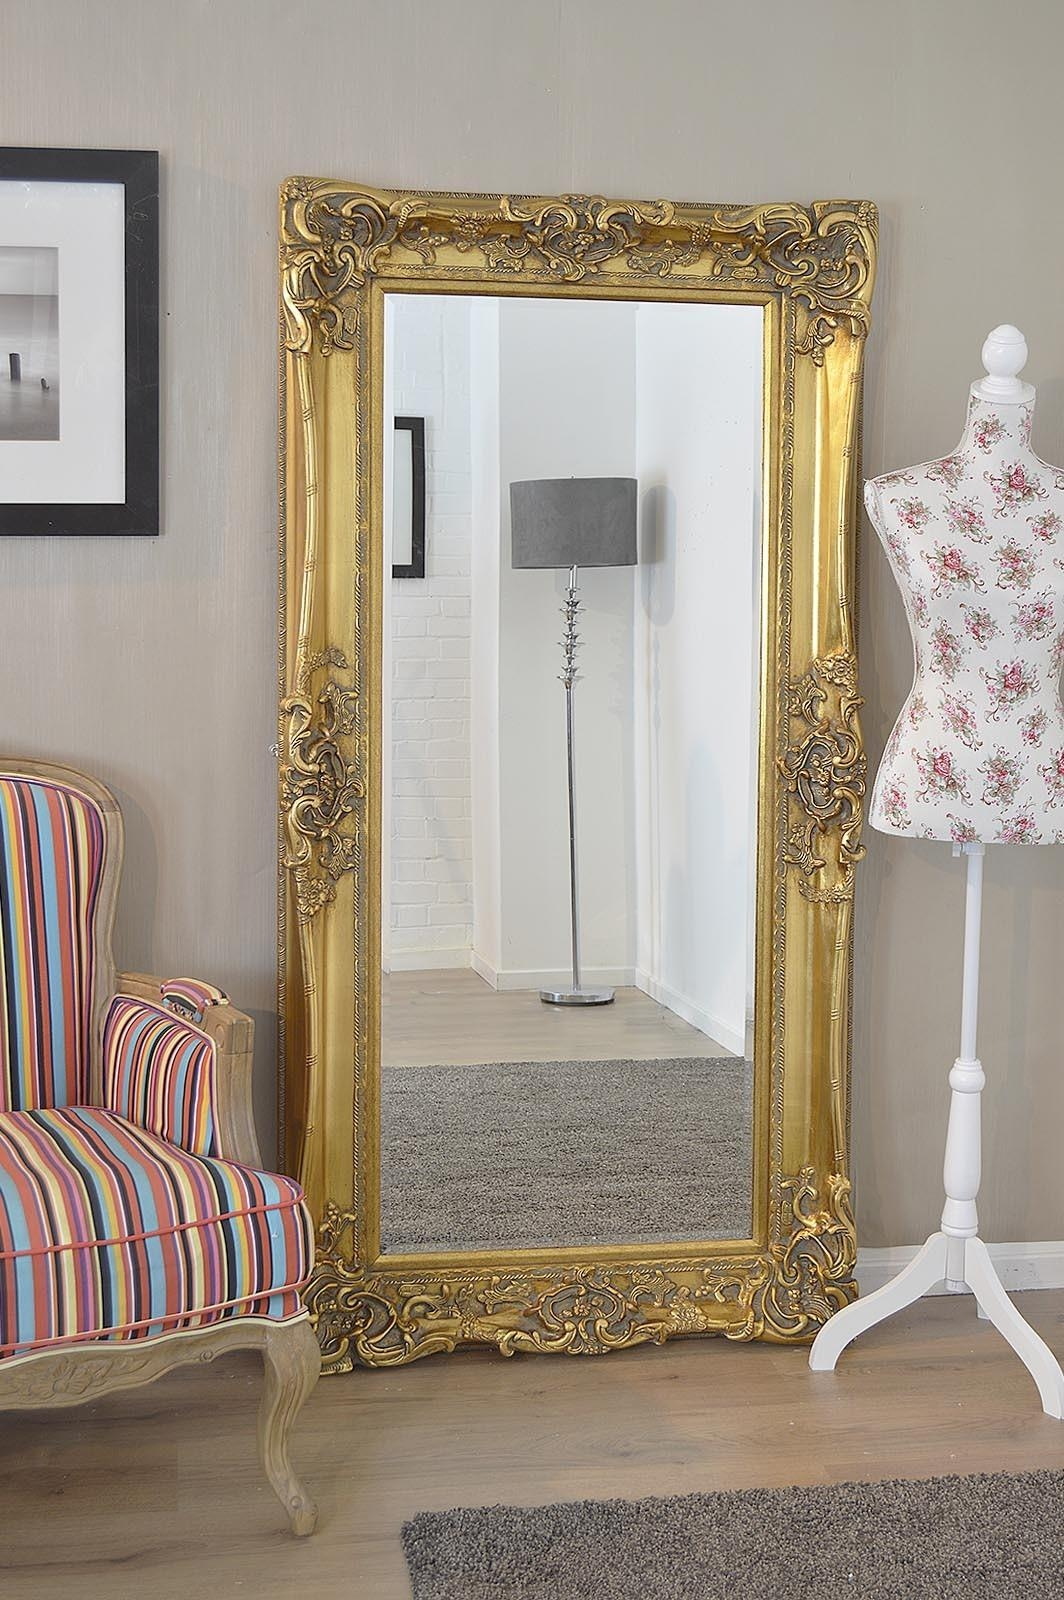 Full Length Mirrors For Sale 146 Cool Ideas For Full Length Mirror Throughout Antique Full Length Wall Mirror (View 5 of 20)